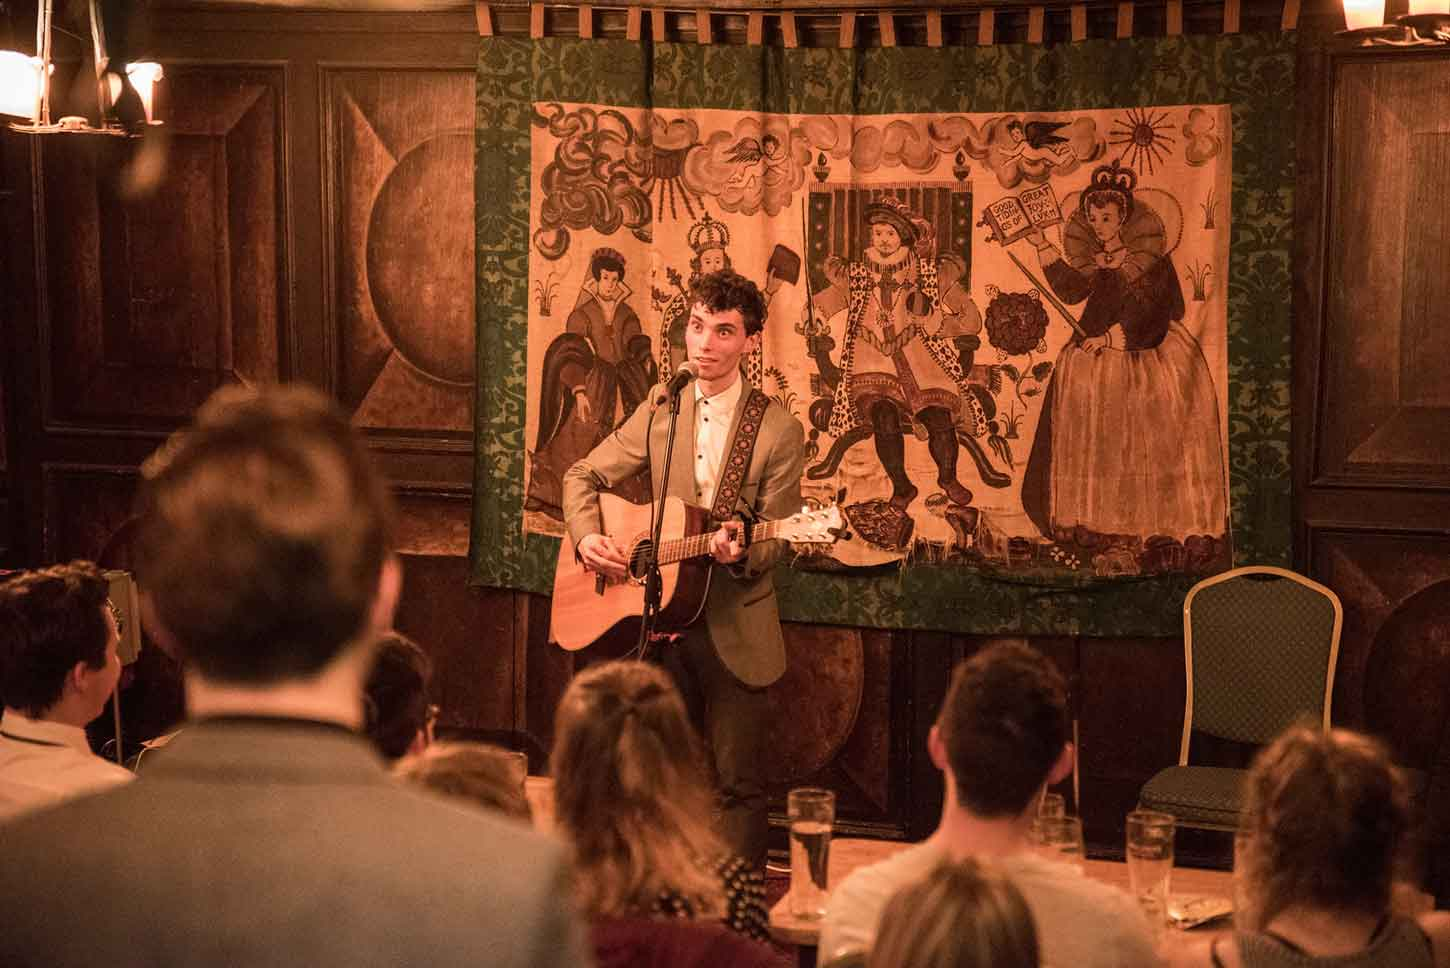 Chris Tavener Performing Live In York. Photo by Flaming Pint Photography